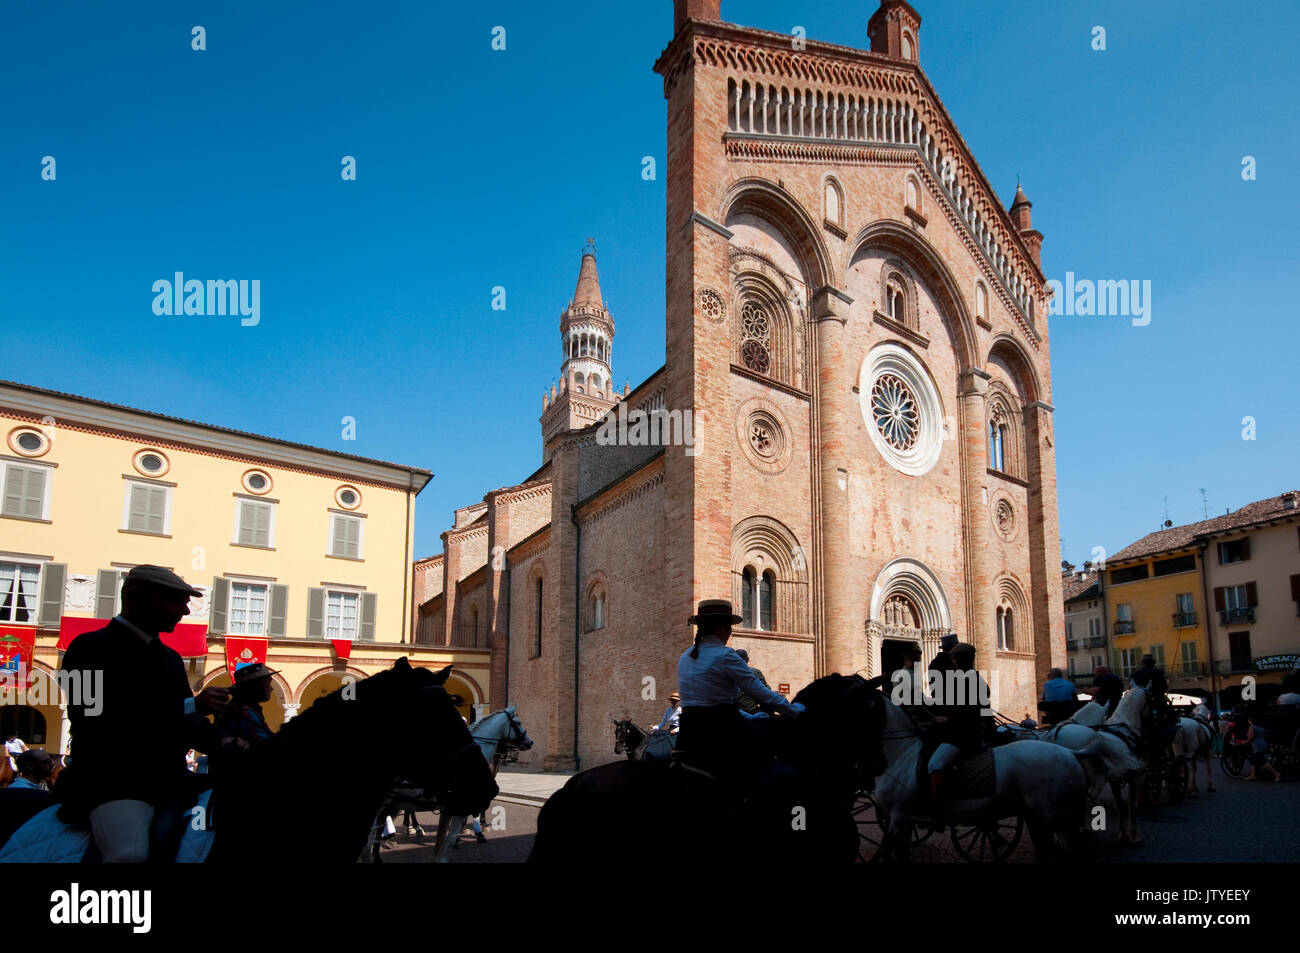 Italy, Lombardy, Crema, Piazza Duomo Square, Horse Show - Stock Image